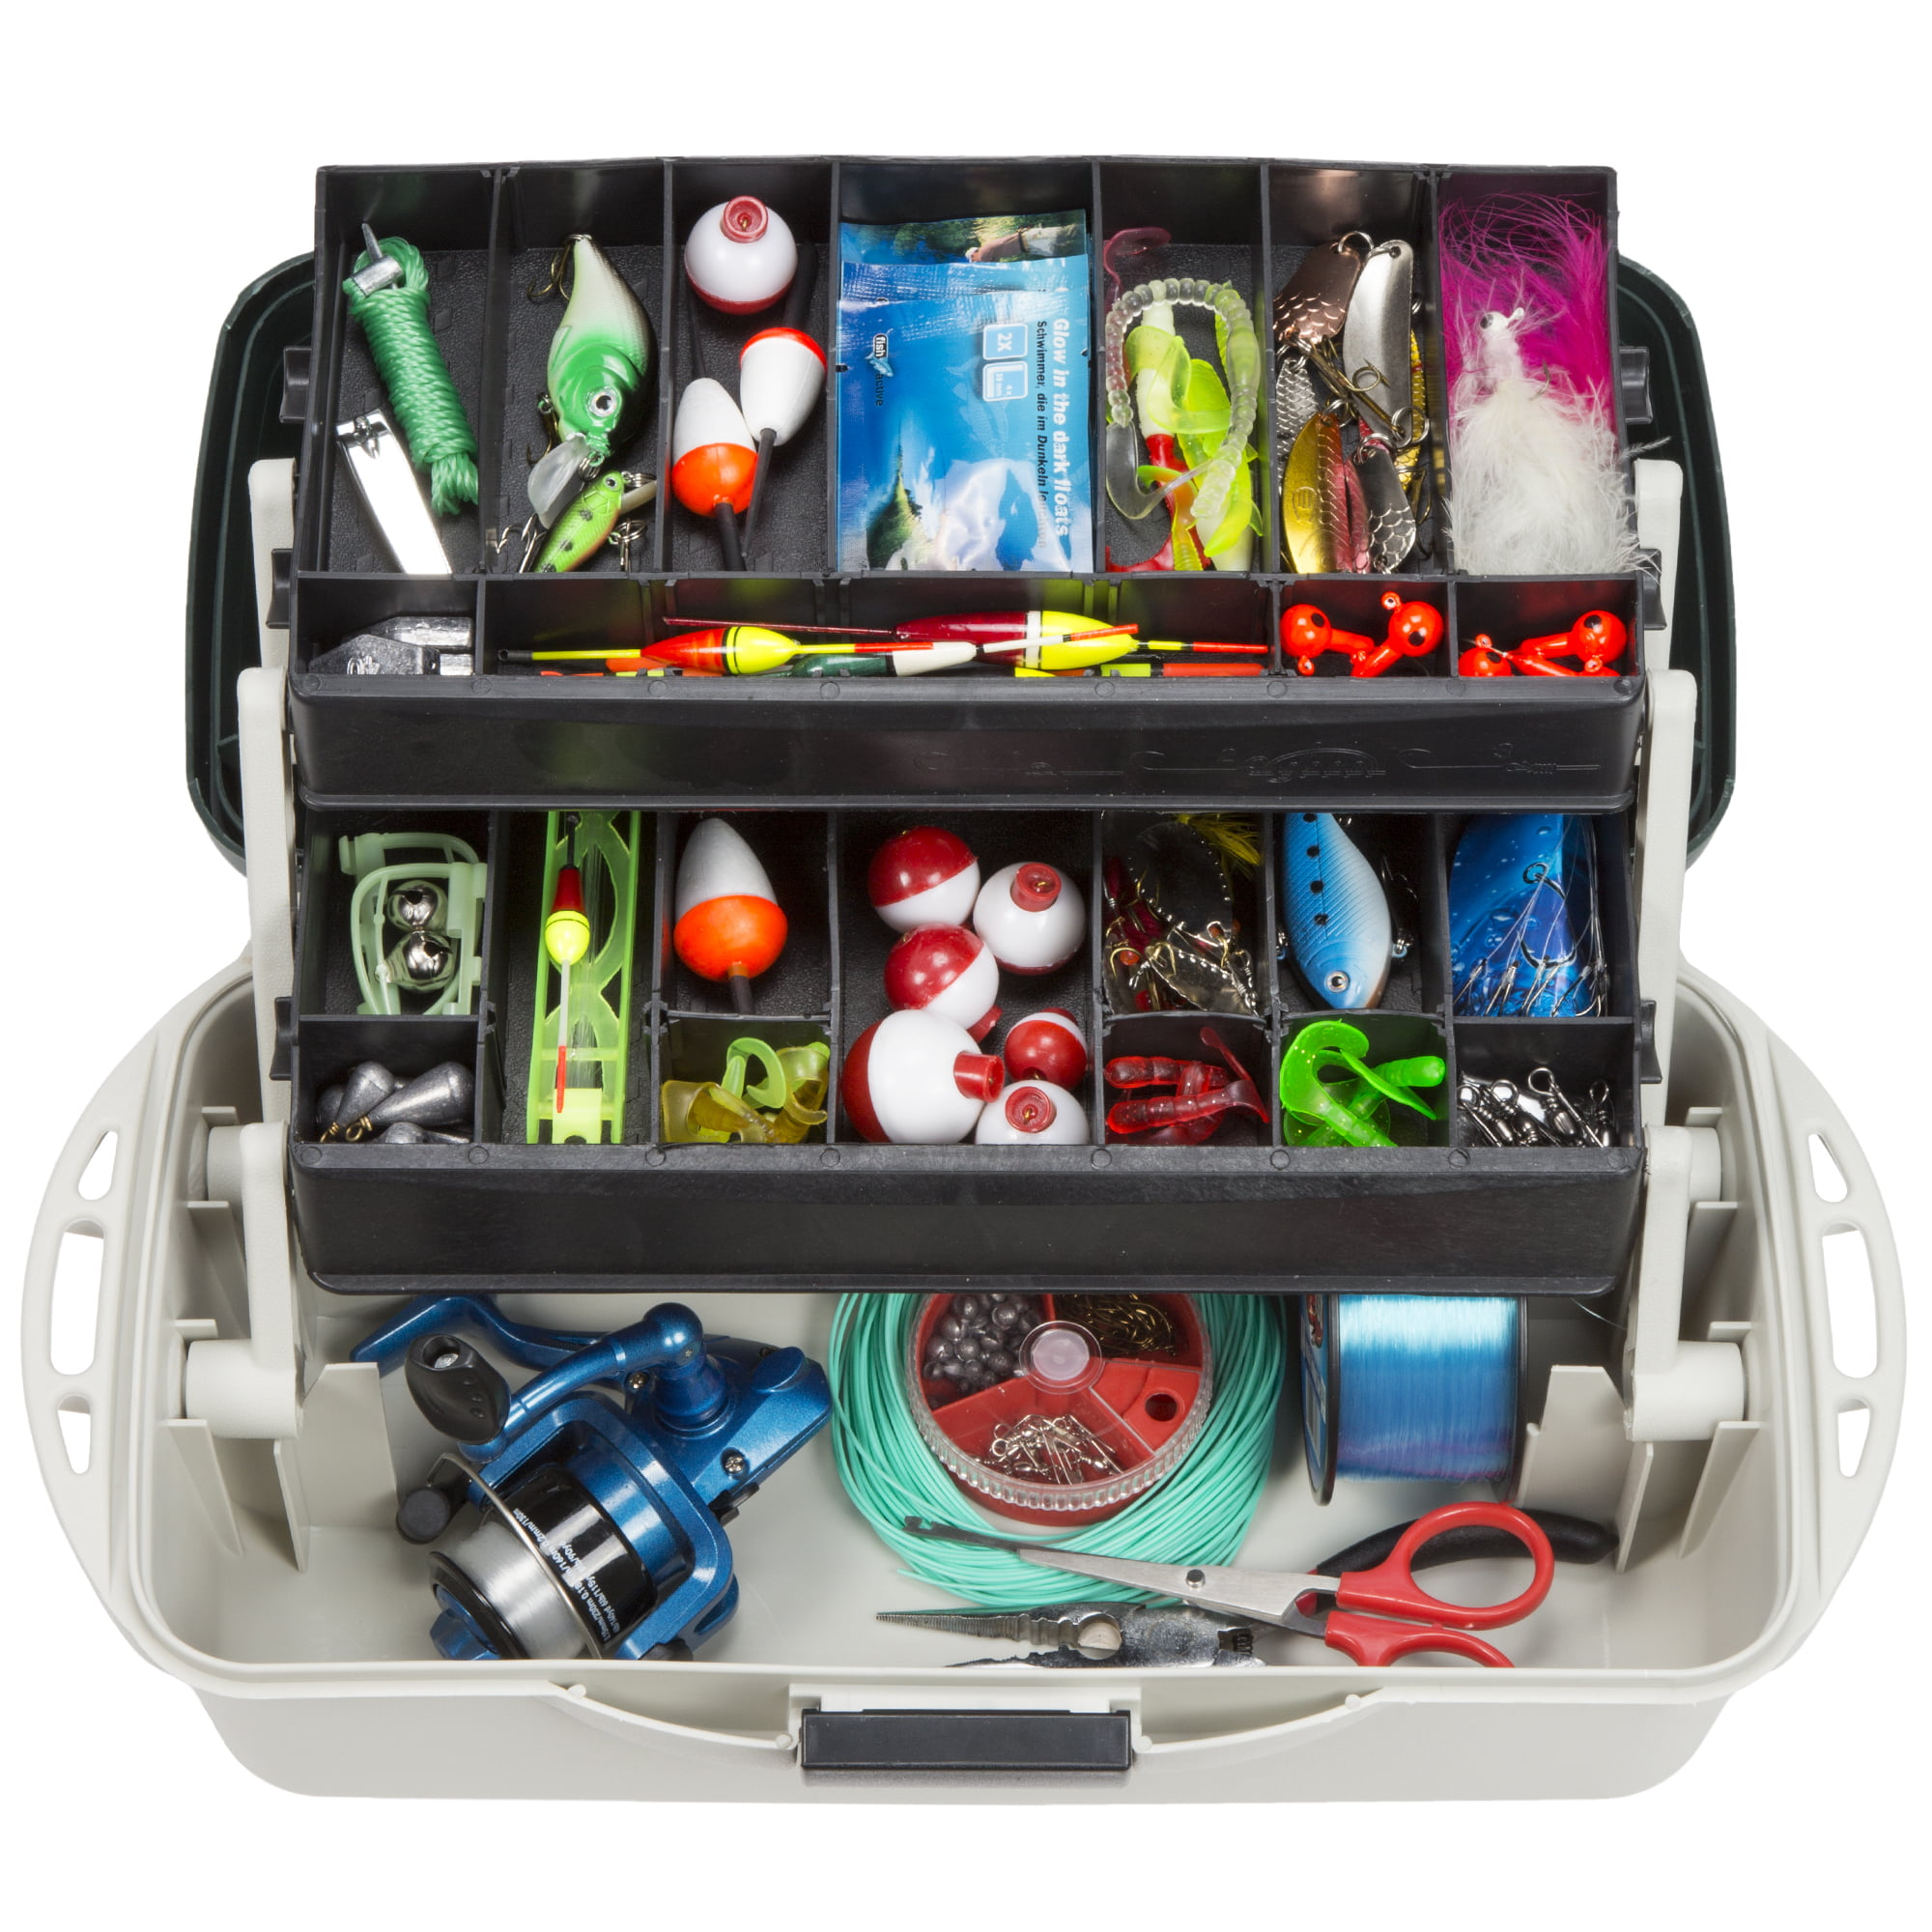 2-Tray Fishing Tackle Box Craft Tool Chest and Art Supply Organizer � 14 Inch by Wakeman Outdoors by Trademark Global LLC